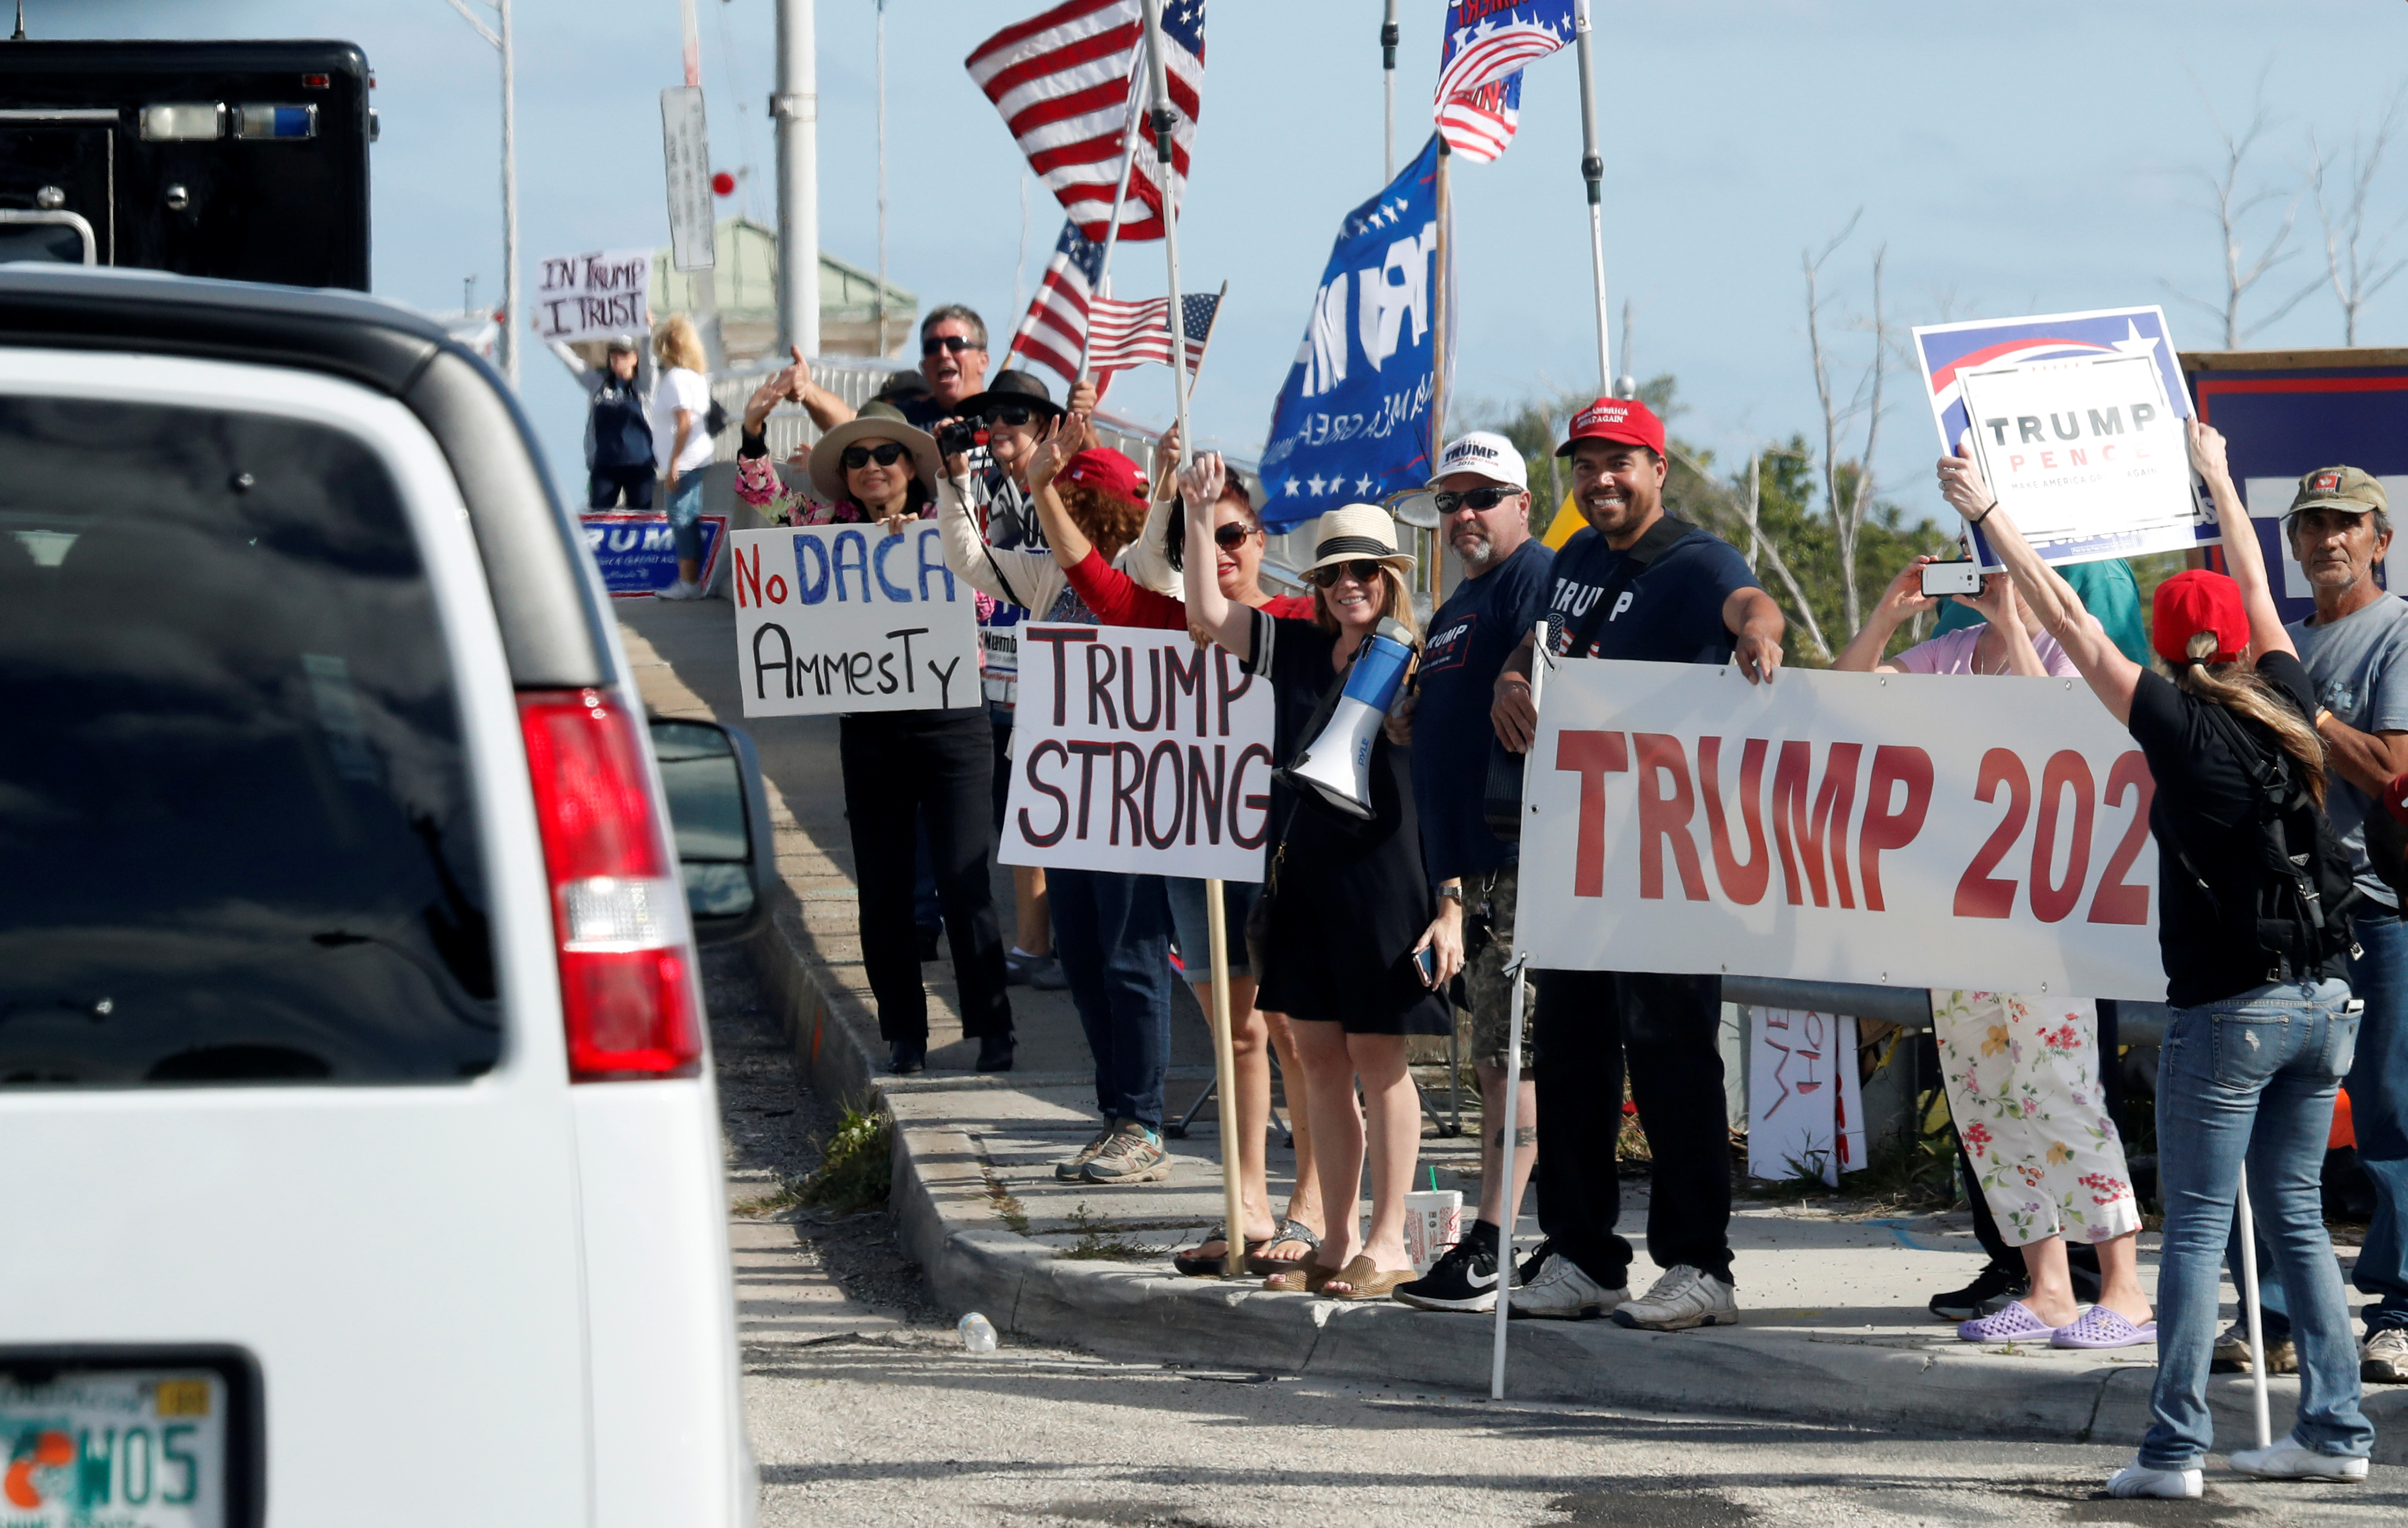 Supporters hold up signs as U.S. President Donald Trump's motorcade passes by in West Palm Beach, Florida, U.S., January 13, 2018. REUTERS/Kevin Lamarque